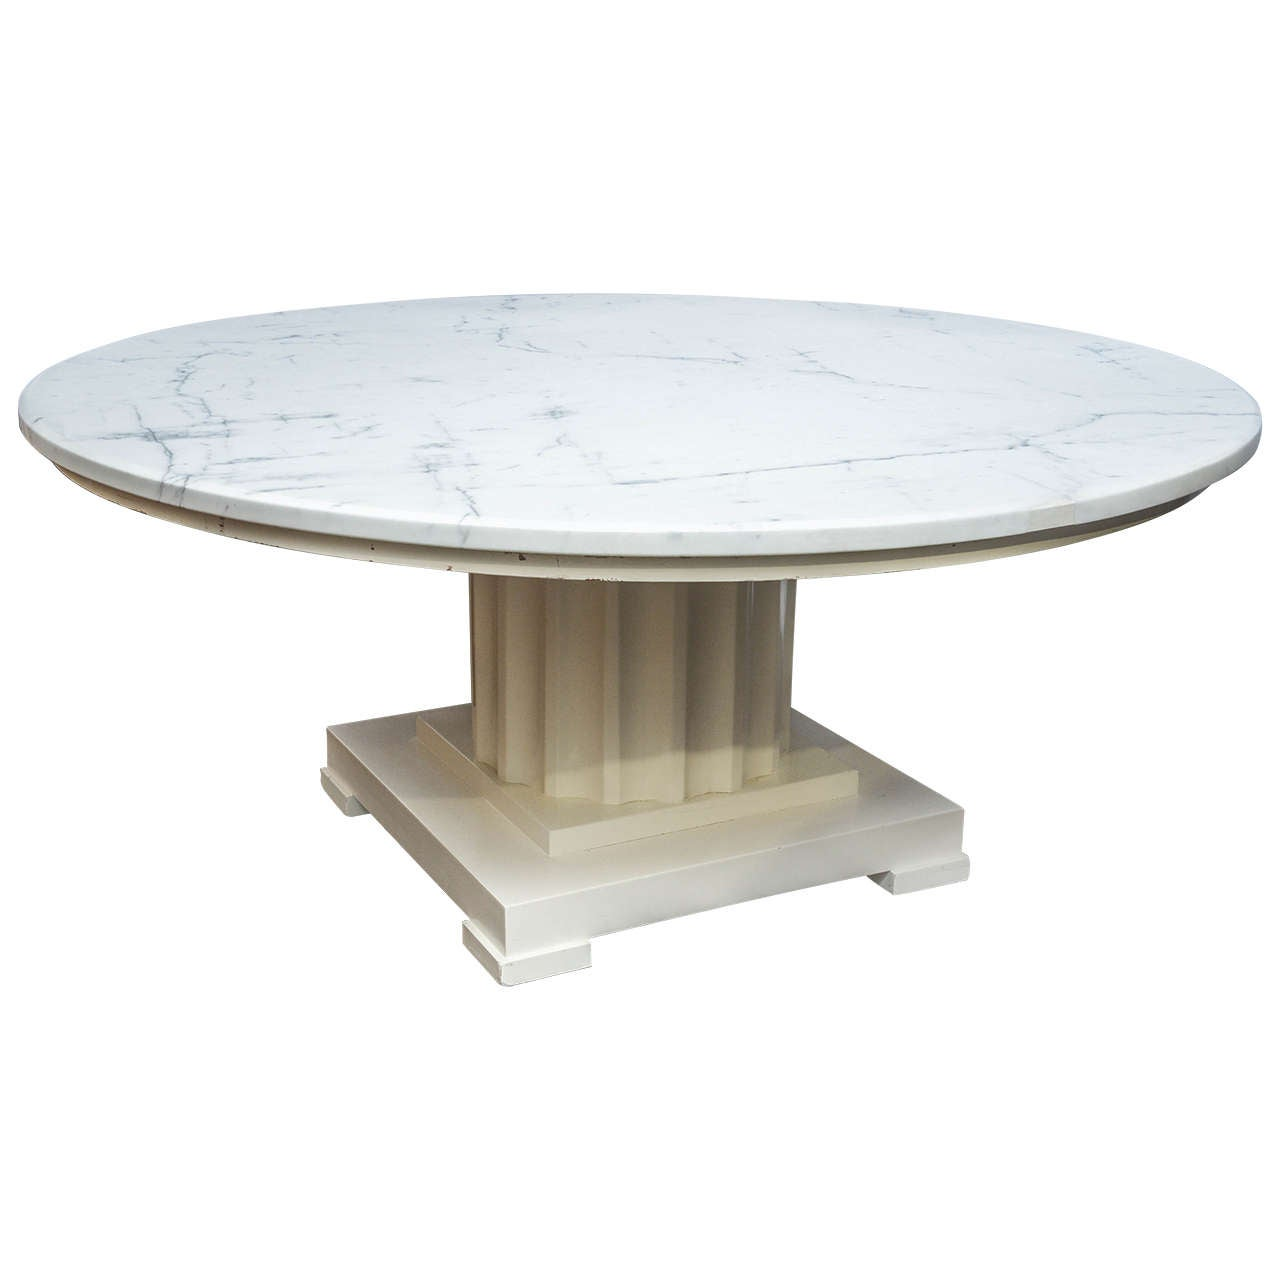 Vintage neoclassic round marble coffee table at 1stdibs Round marble coffee tables